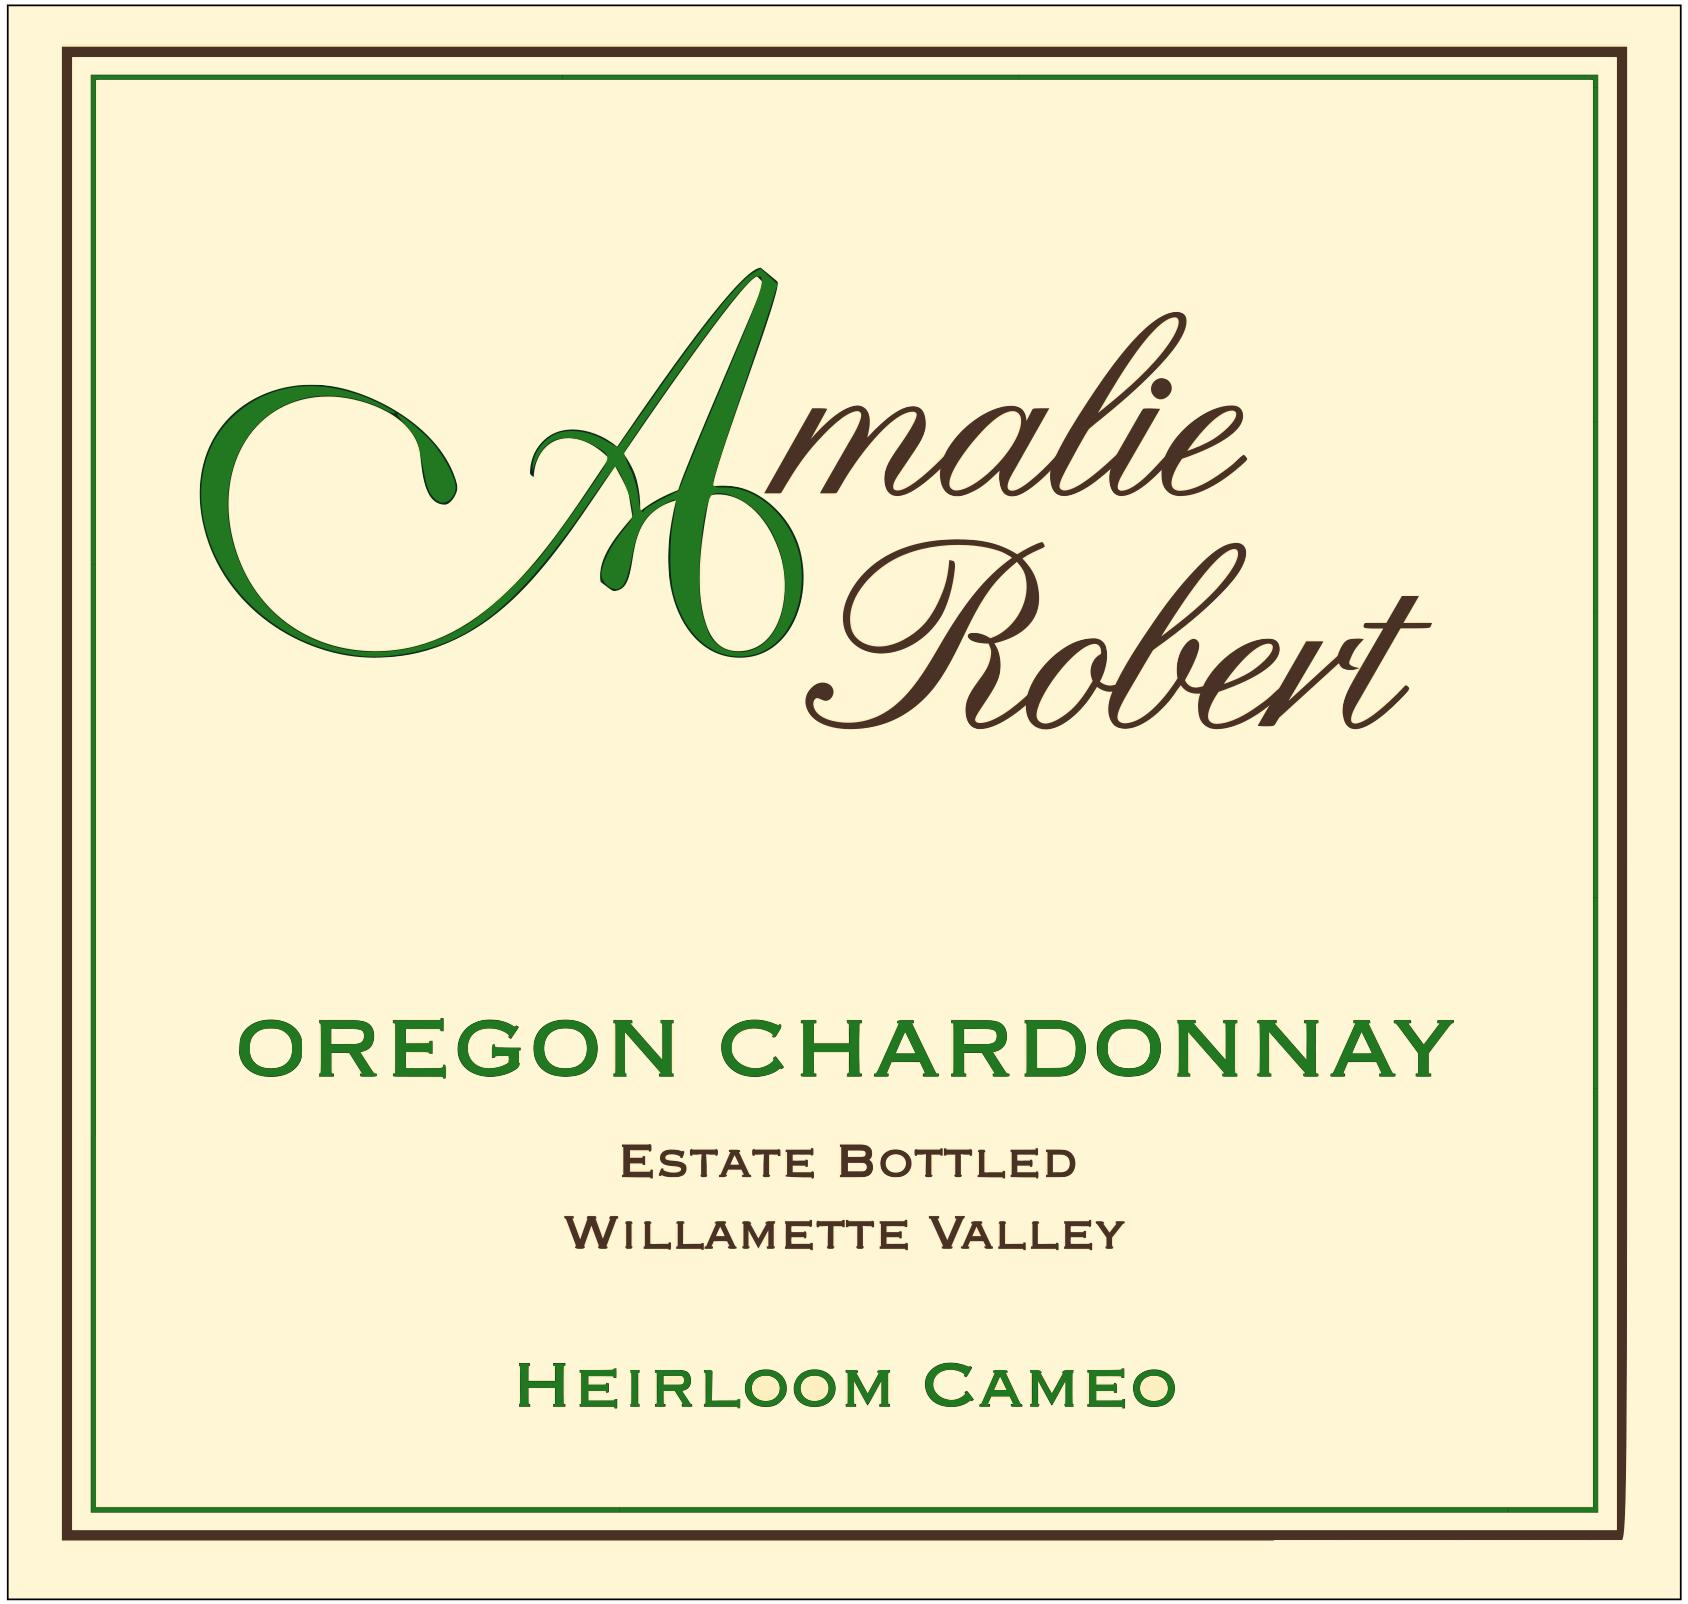 2016 Heirloom Cameo Chardonnay MAIN